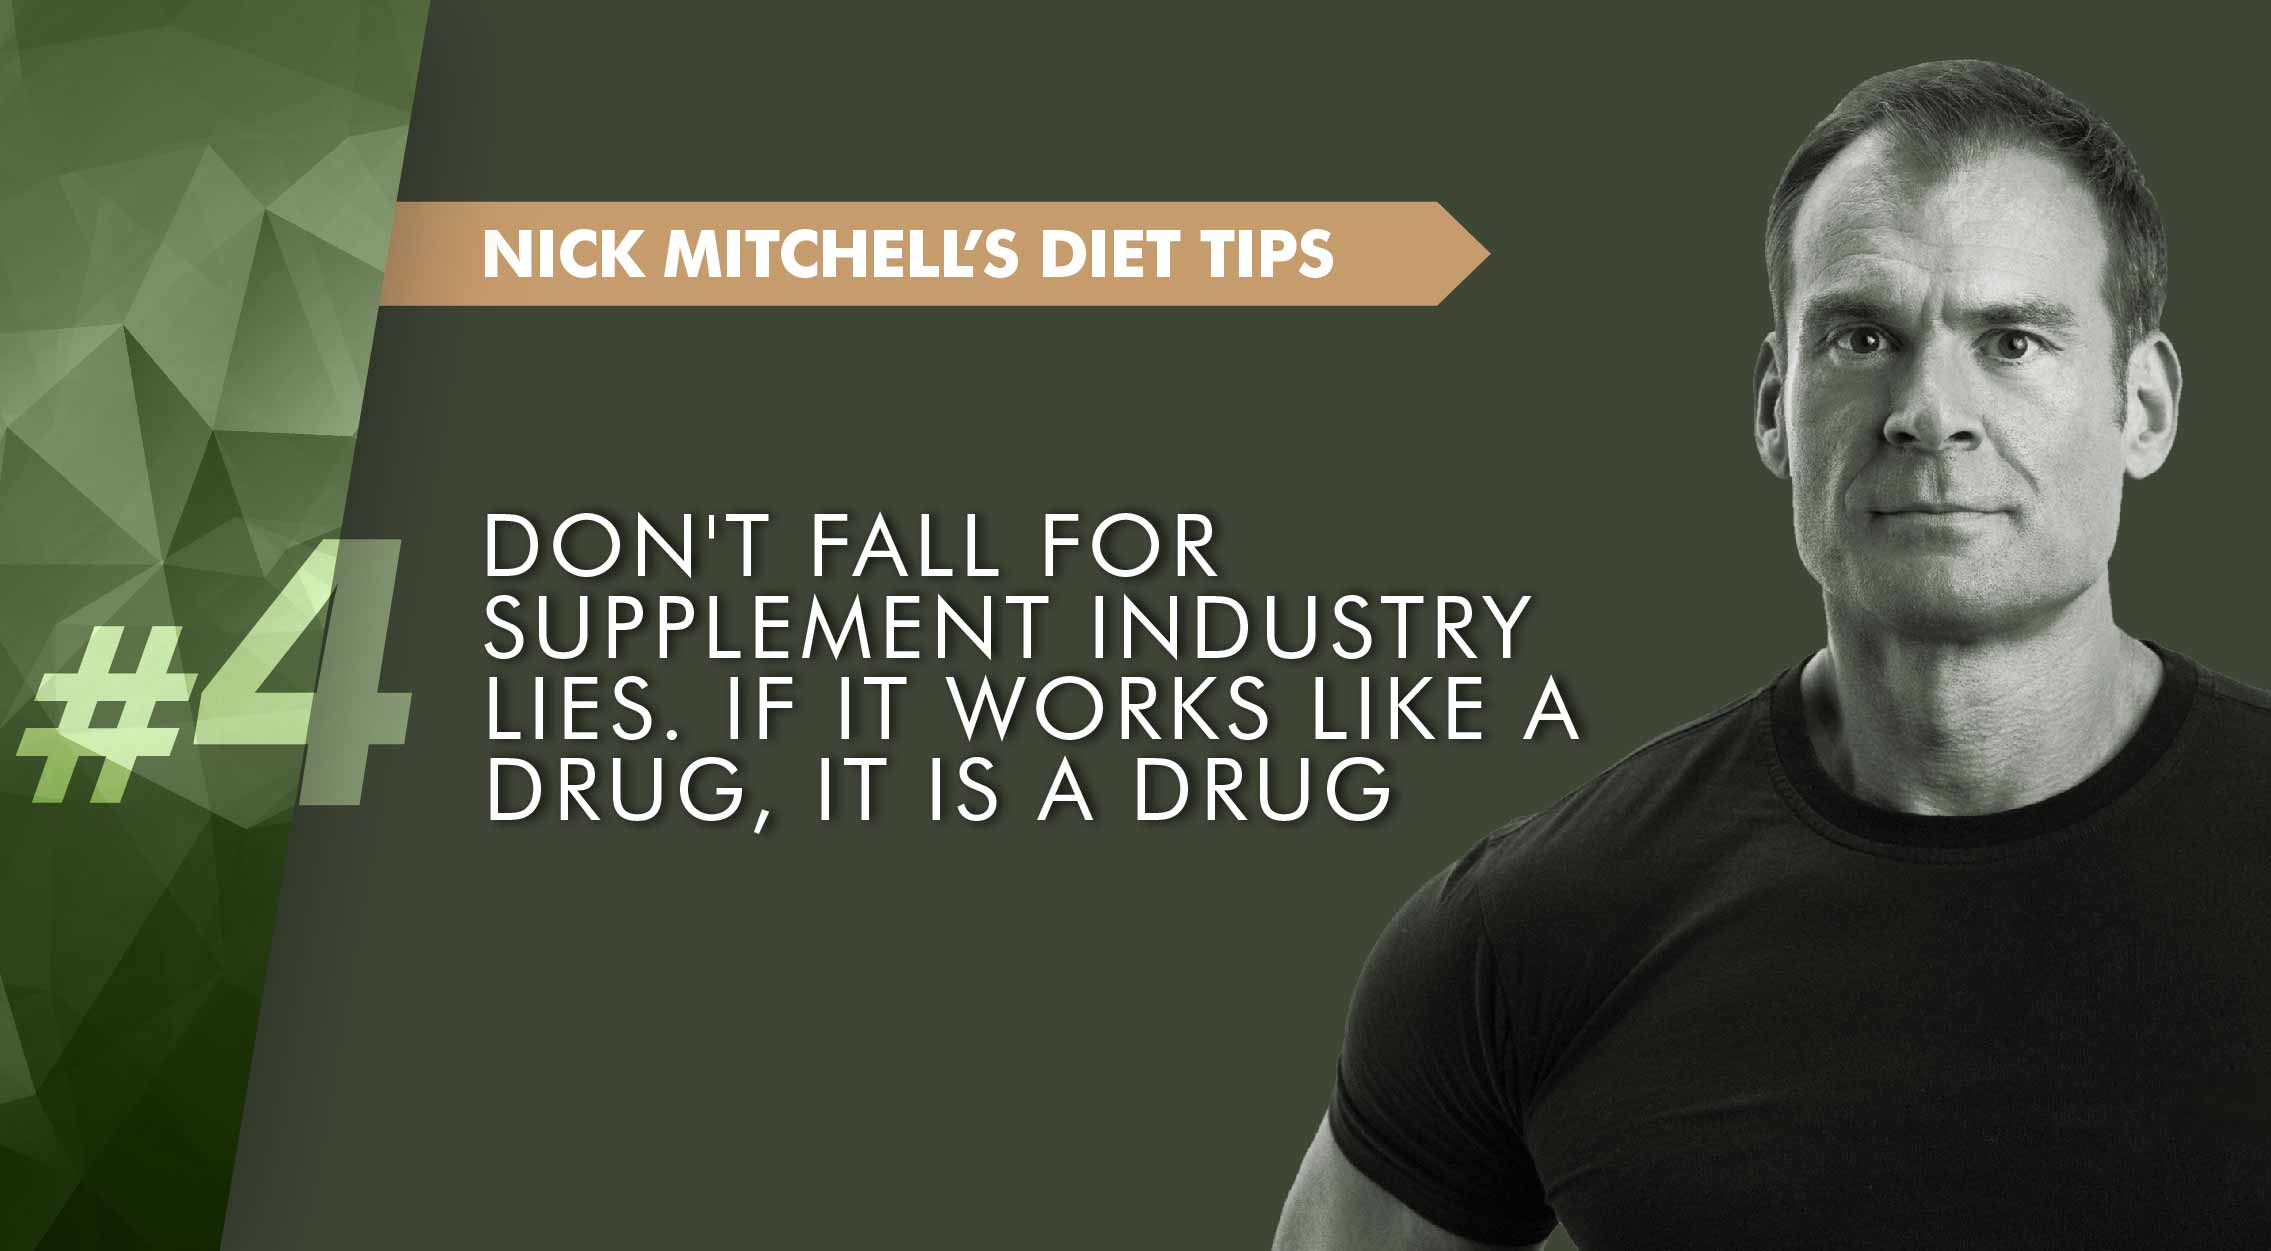 Supplement lies